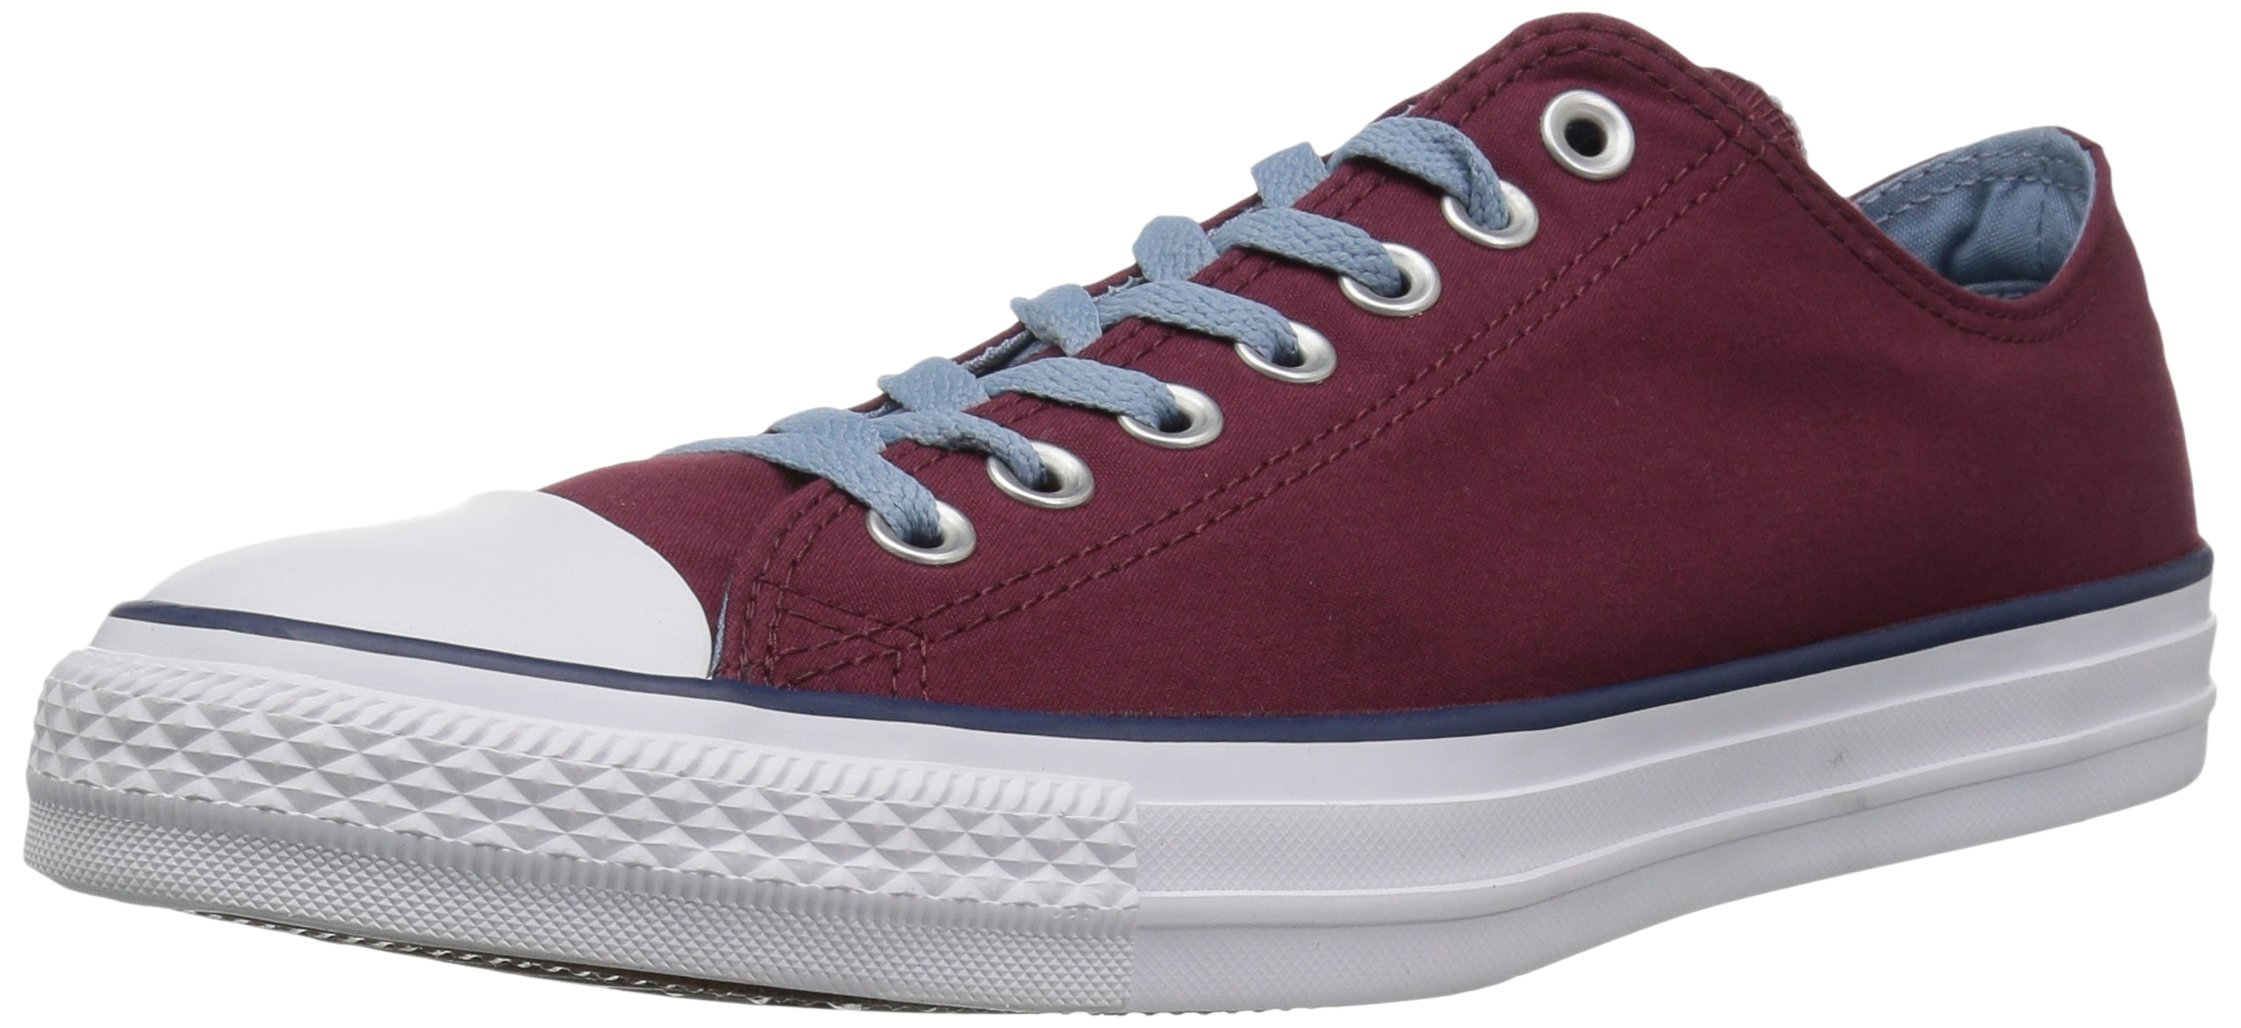 Galleon - Converse Chuck Taylor All Star Color Blocked Low TOP Sneaker b0b2b0c78